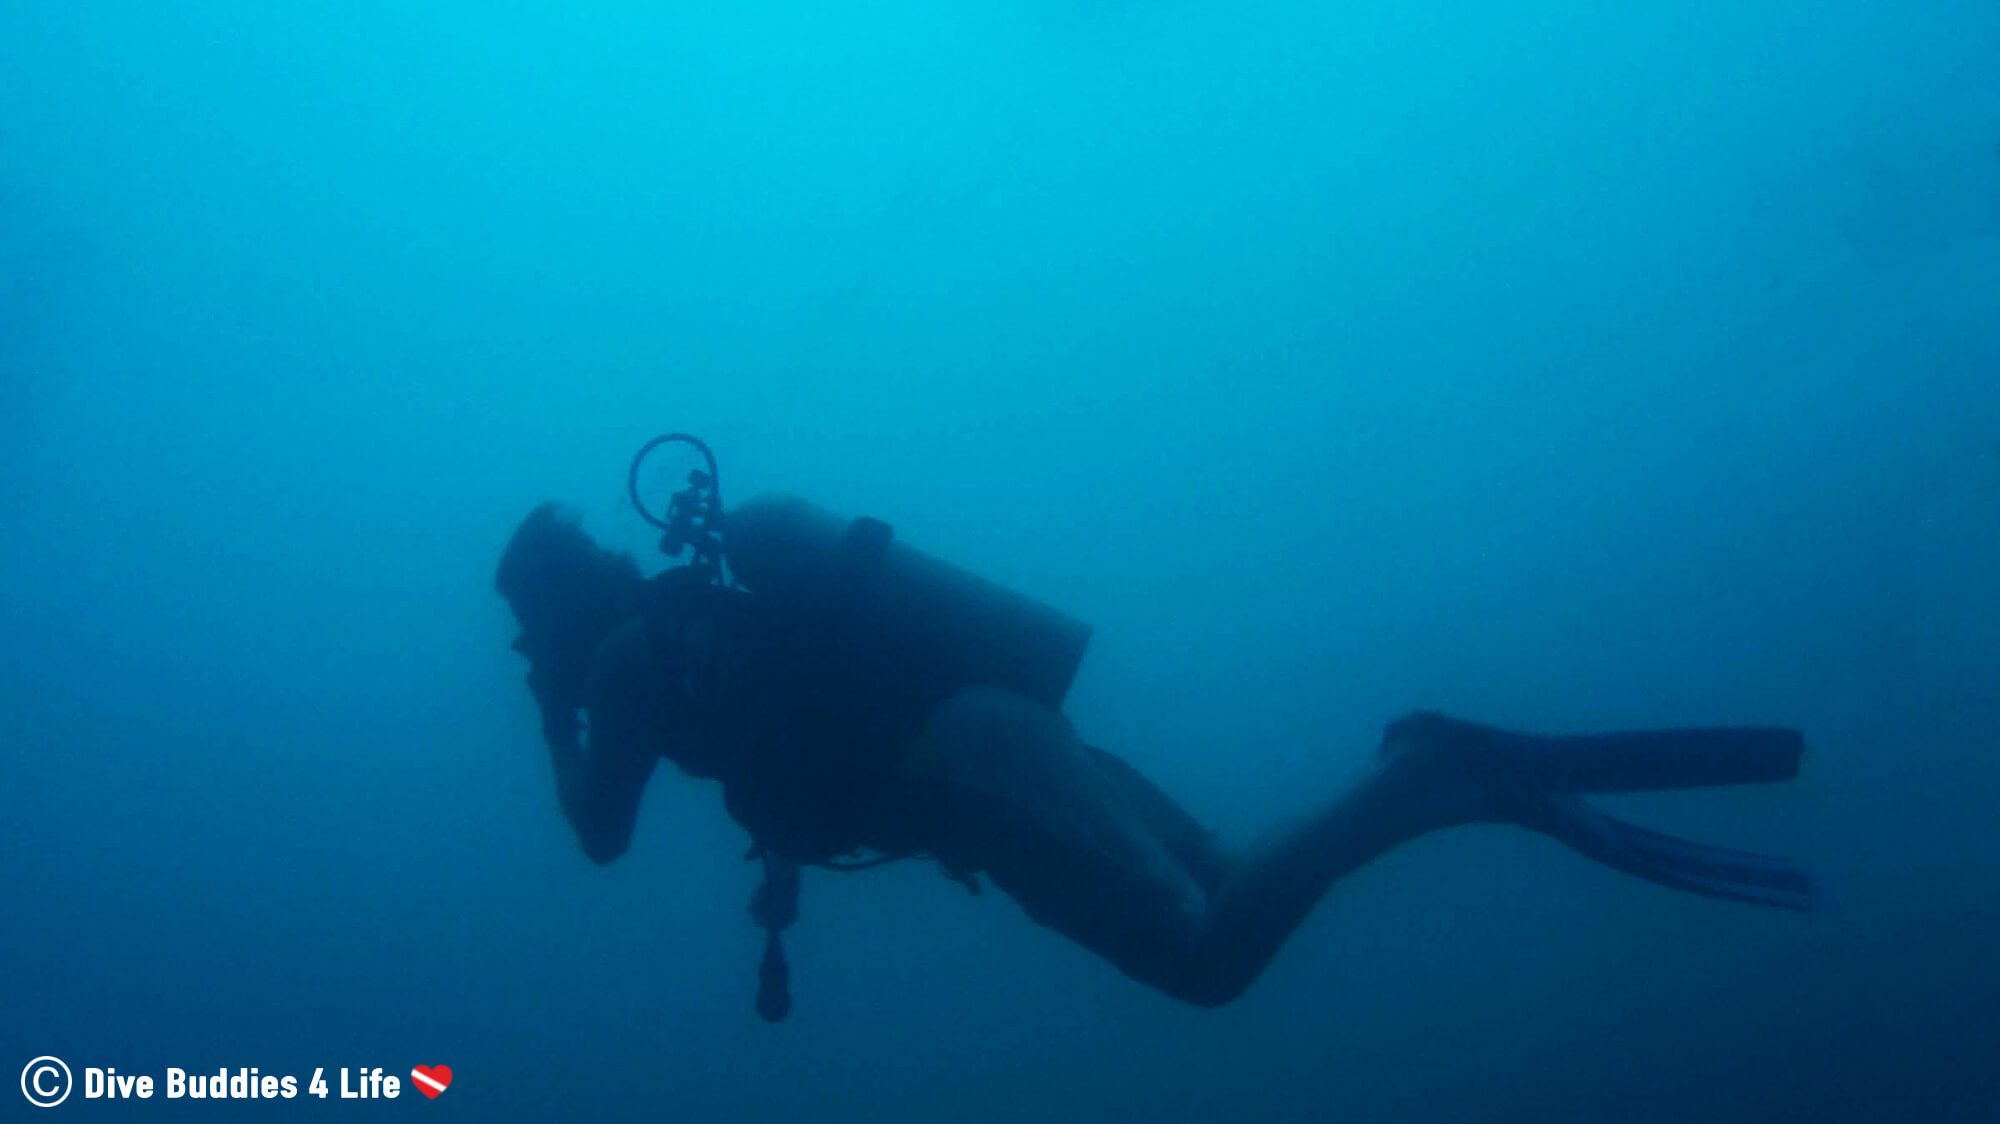 Silhouette Of A Scuba Diver Clearing Their Ears Underwater In Laguna Apoyo, Nicaragua